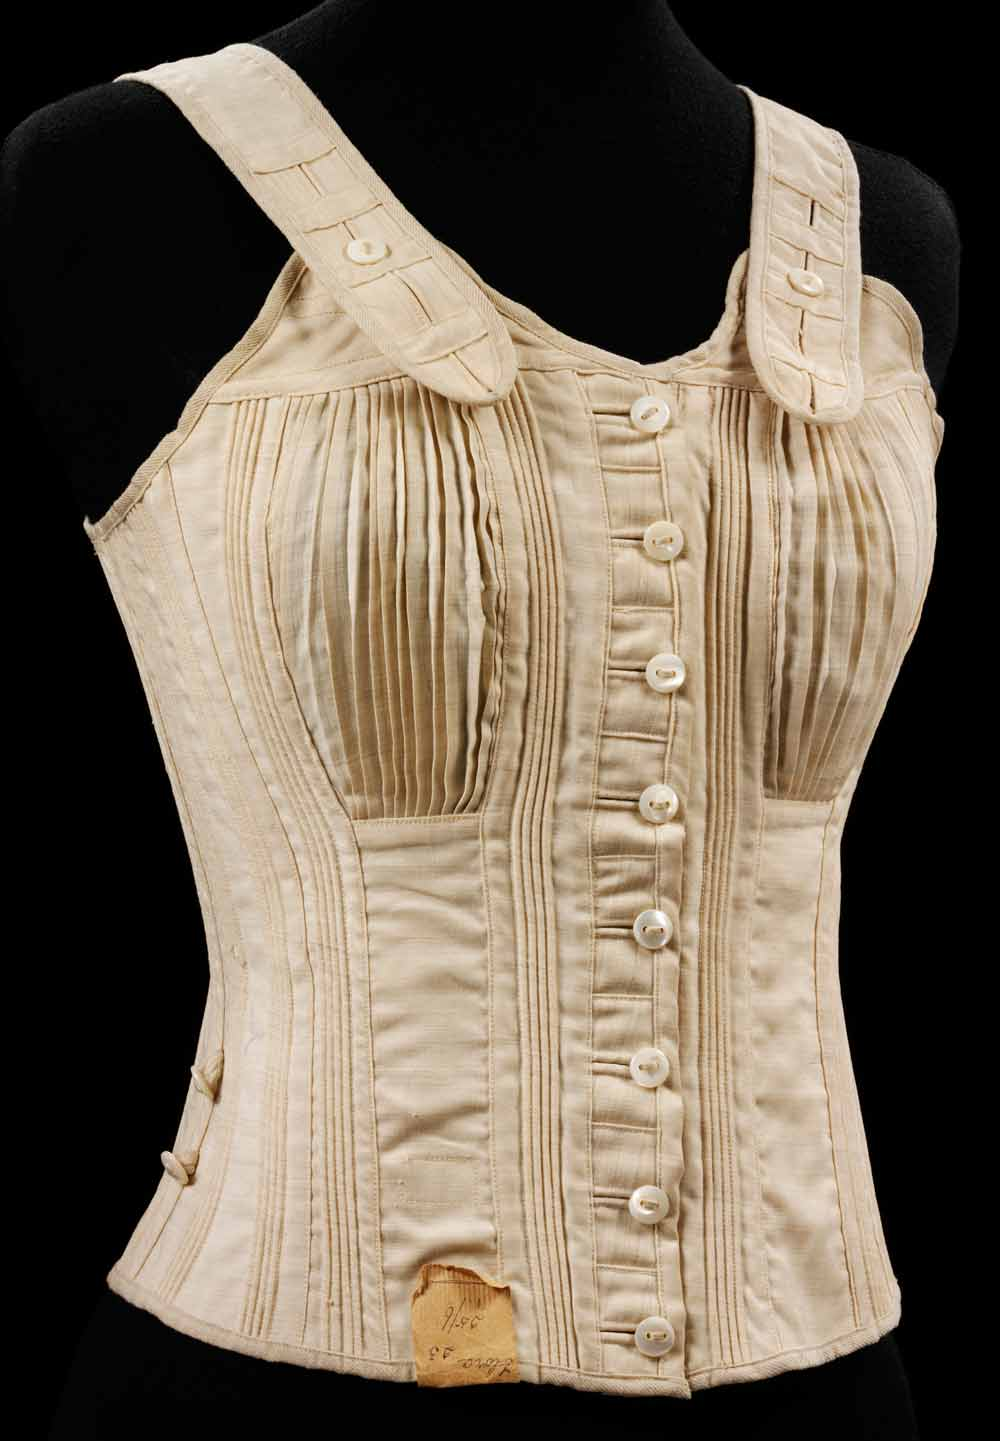 ef36fd6ef73 Corsets and Bustles from 1880-90 - the Move from Over-Structured ...